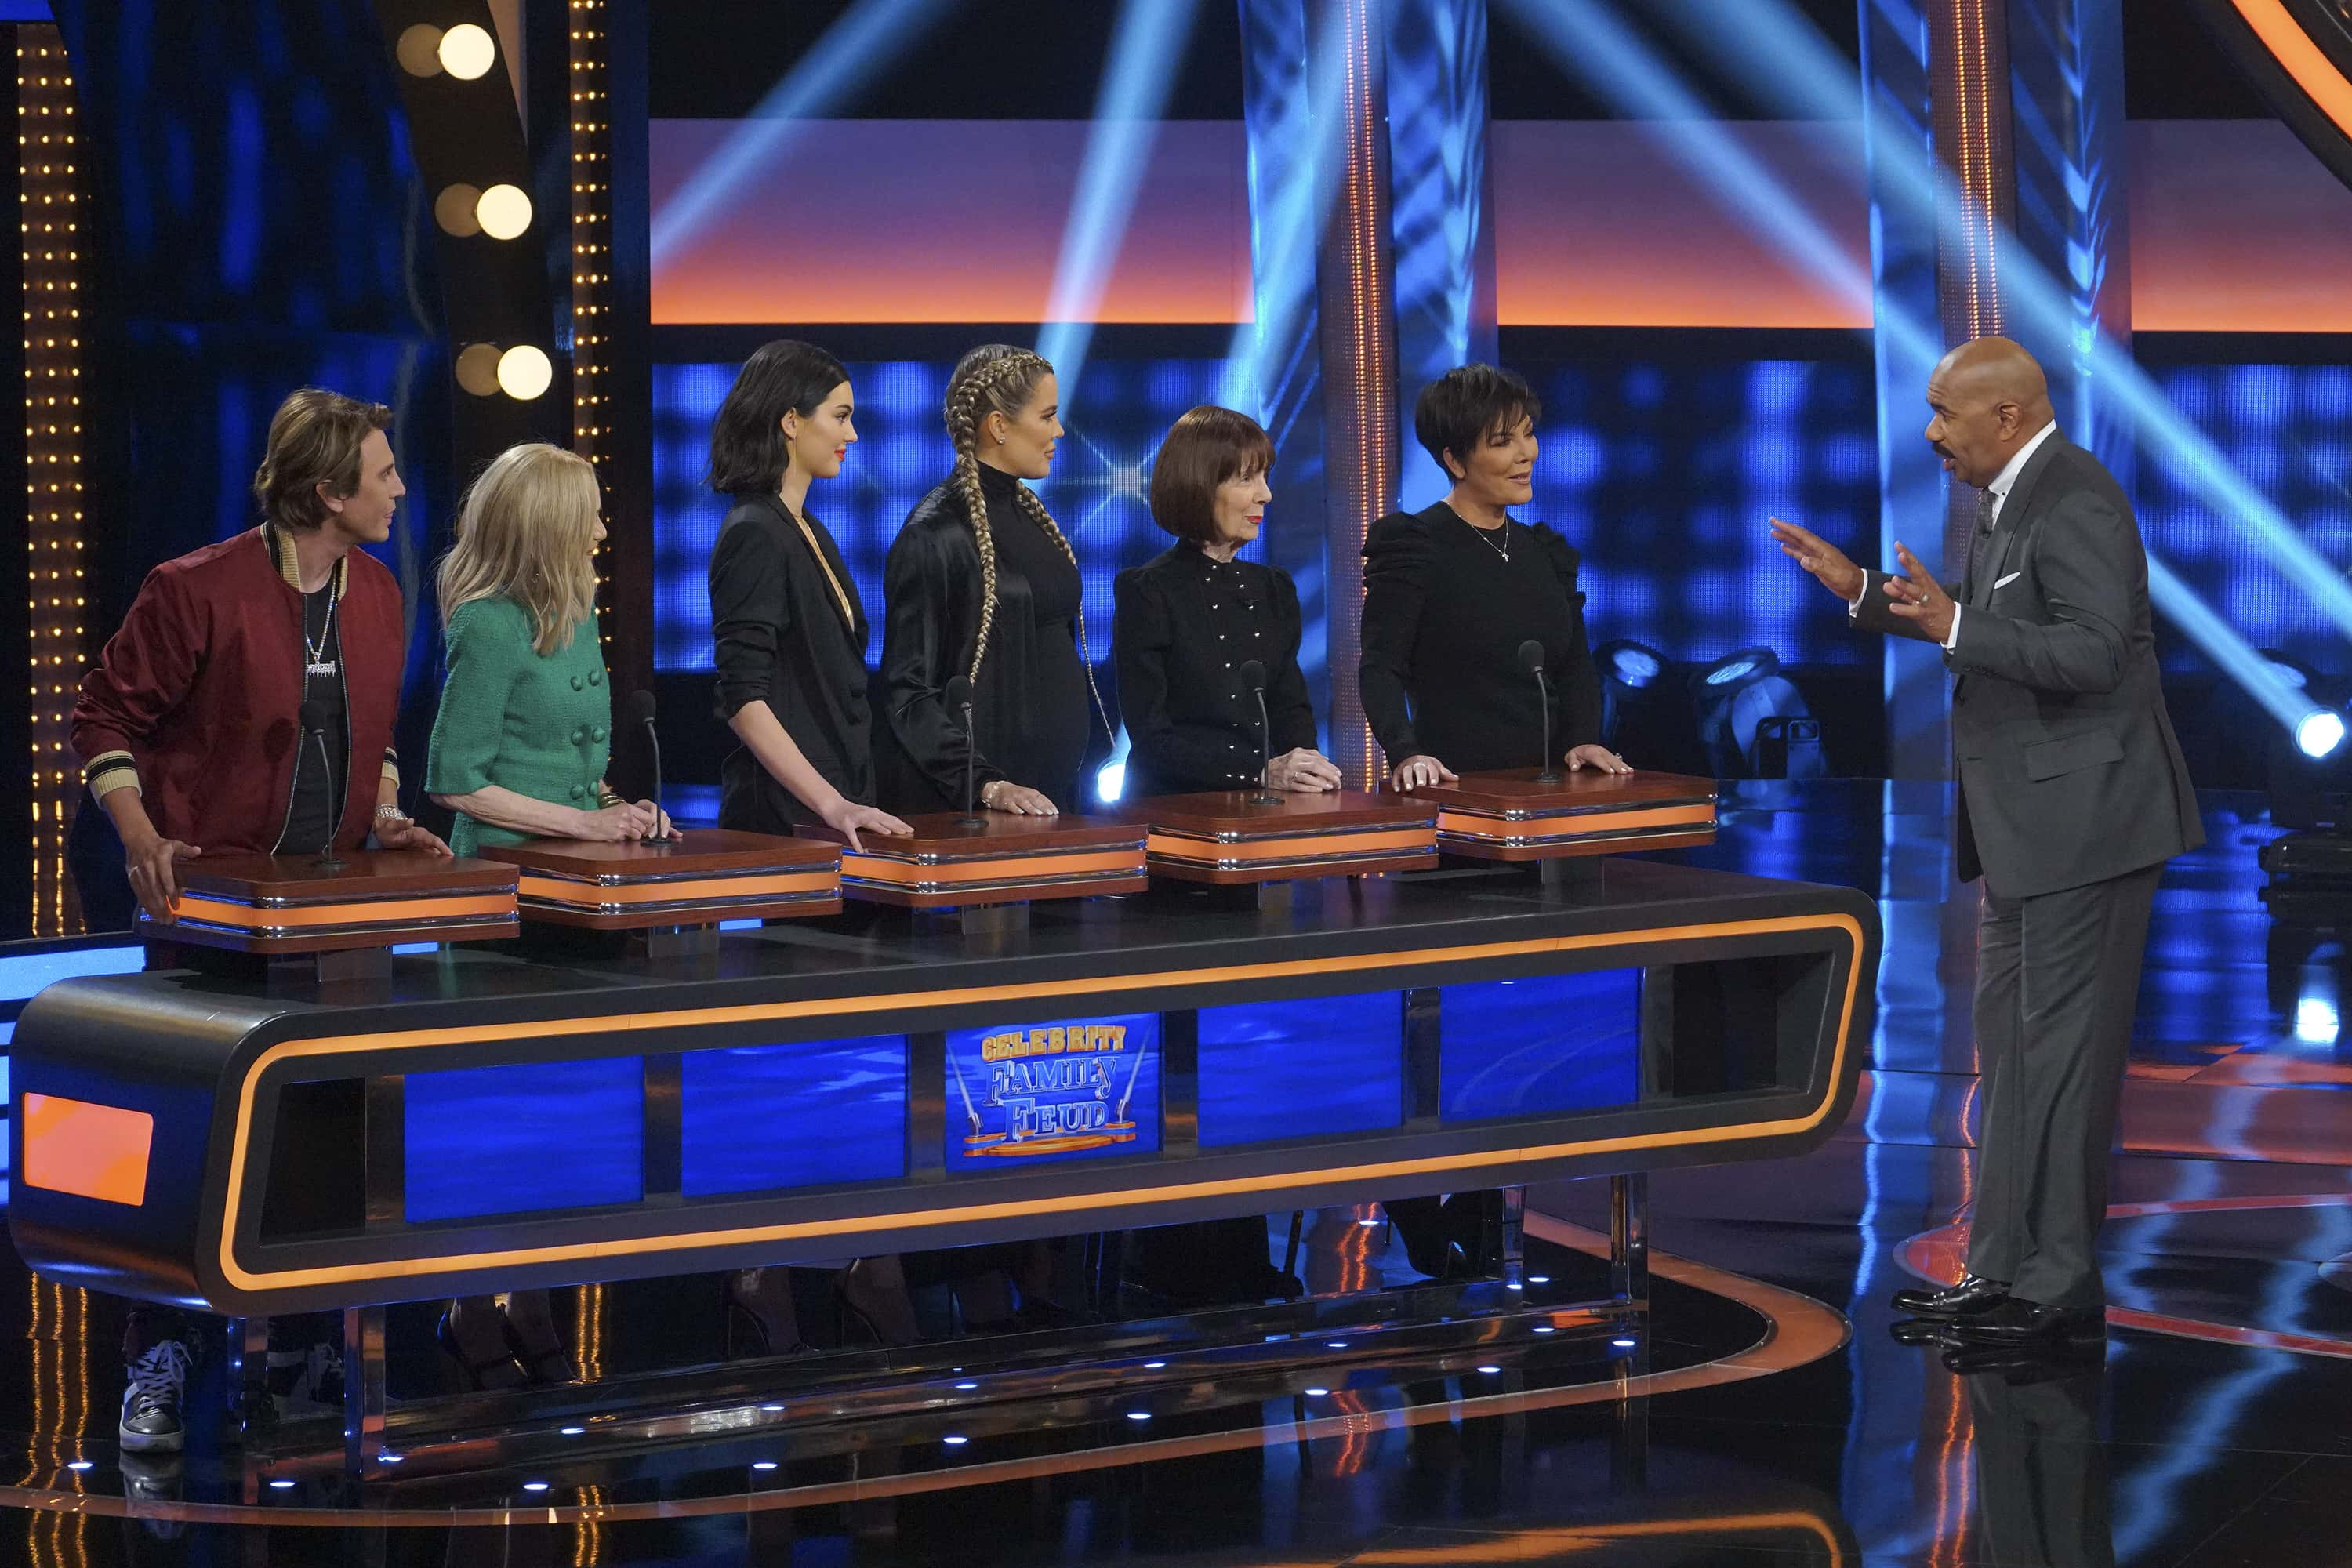 Celebrity Family Feud featuring the Kardashians